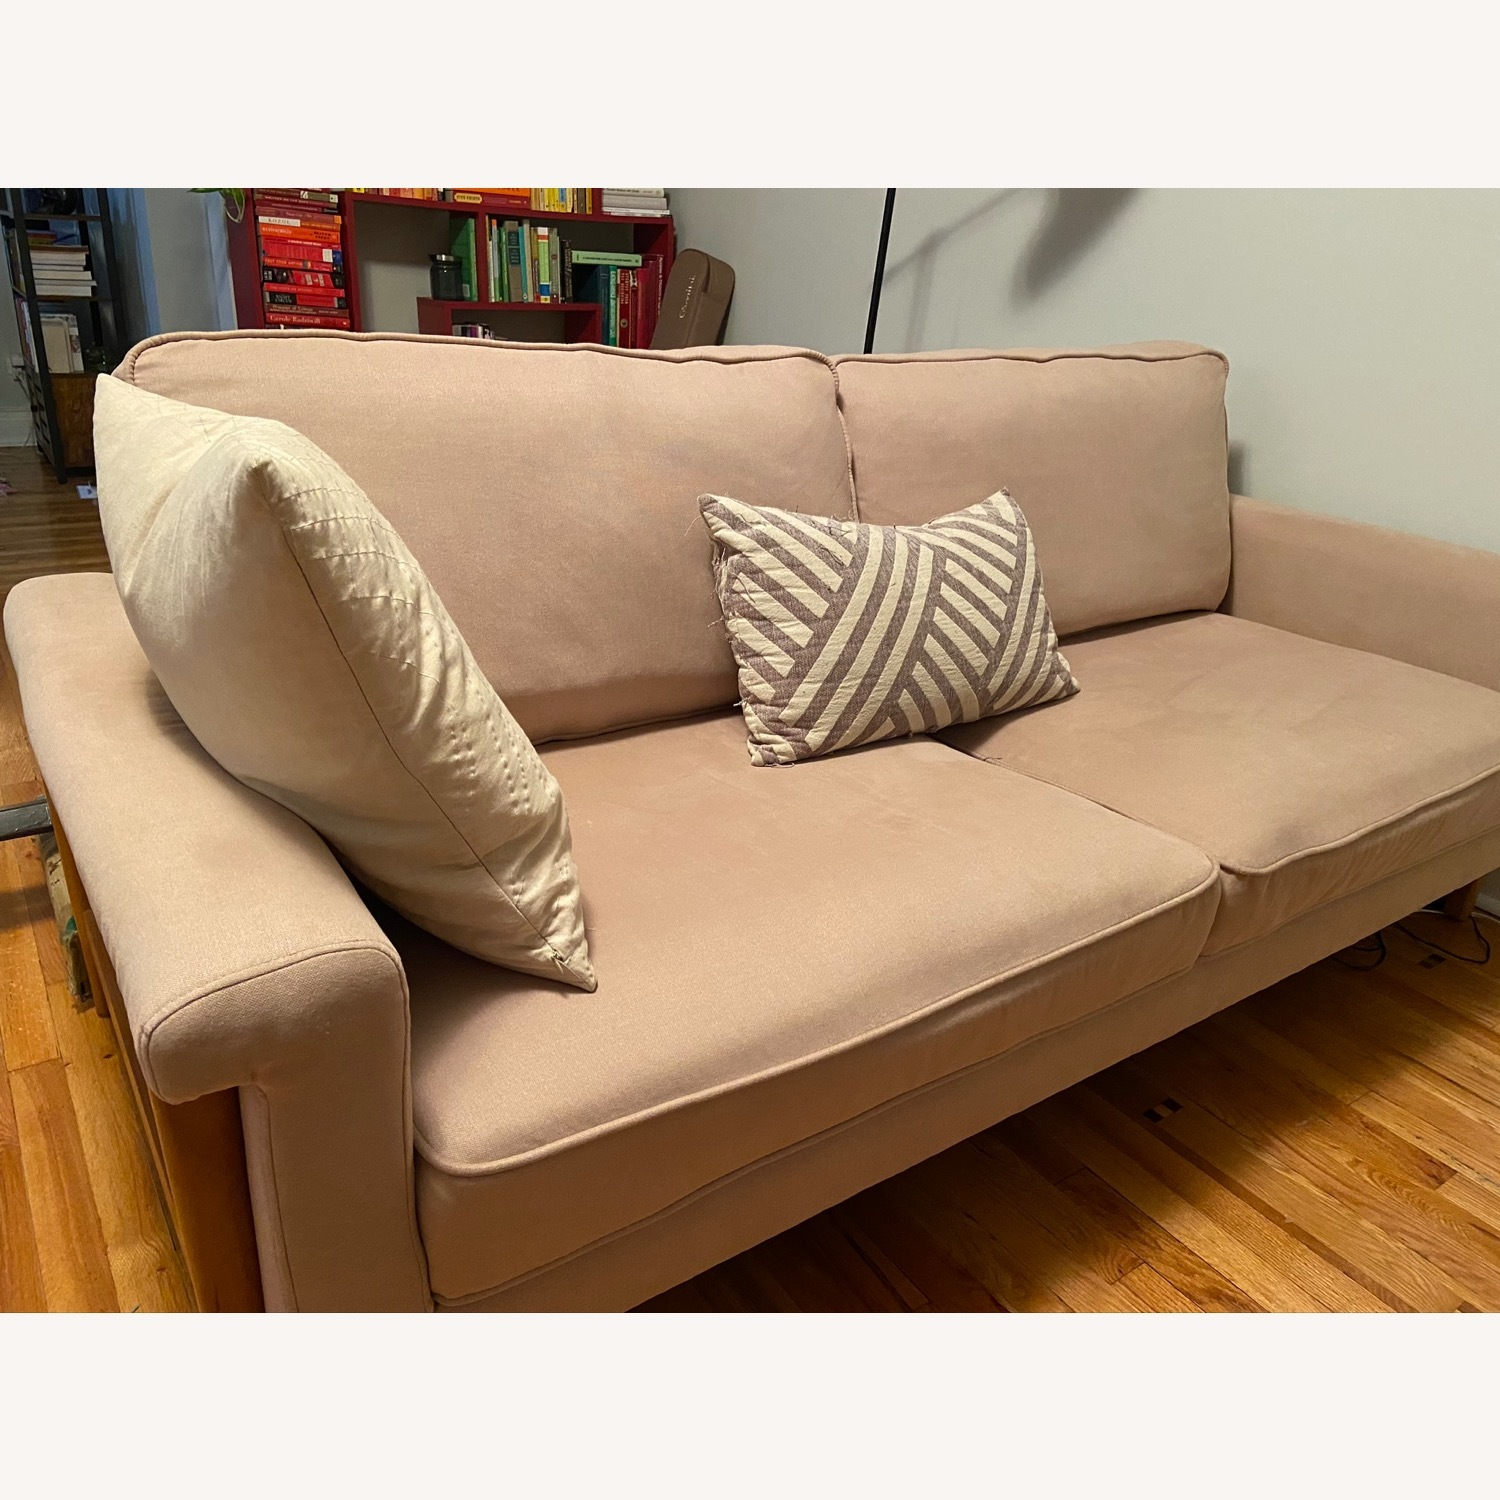 Urban Outfitters Pink Sofa - image-1